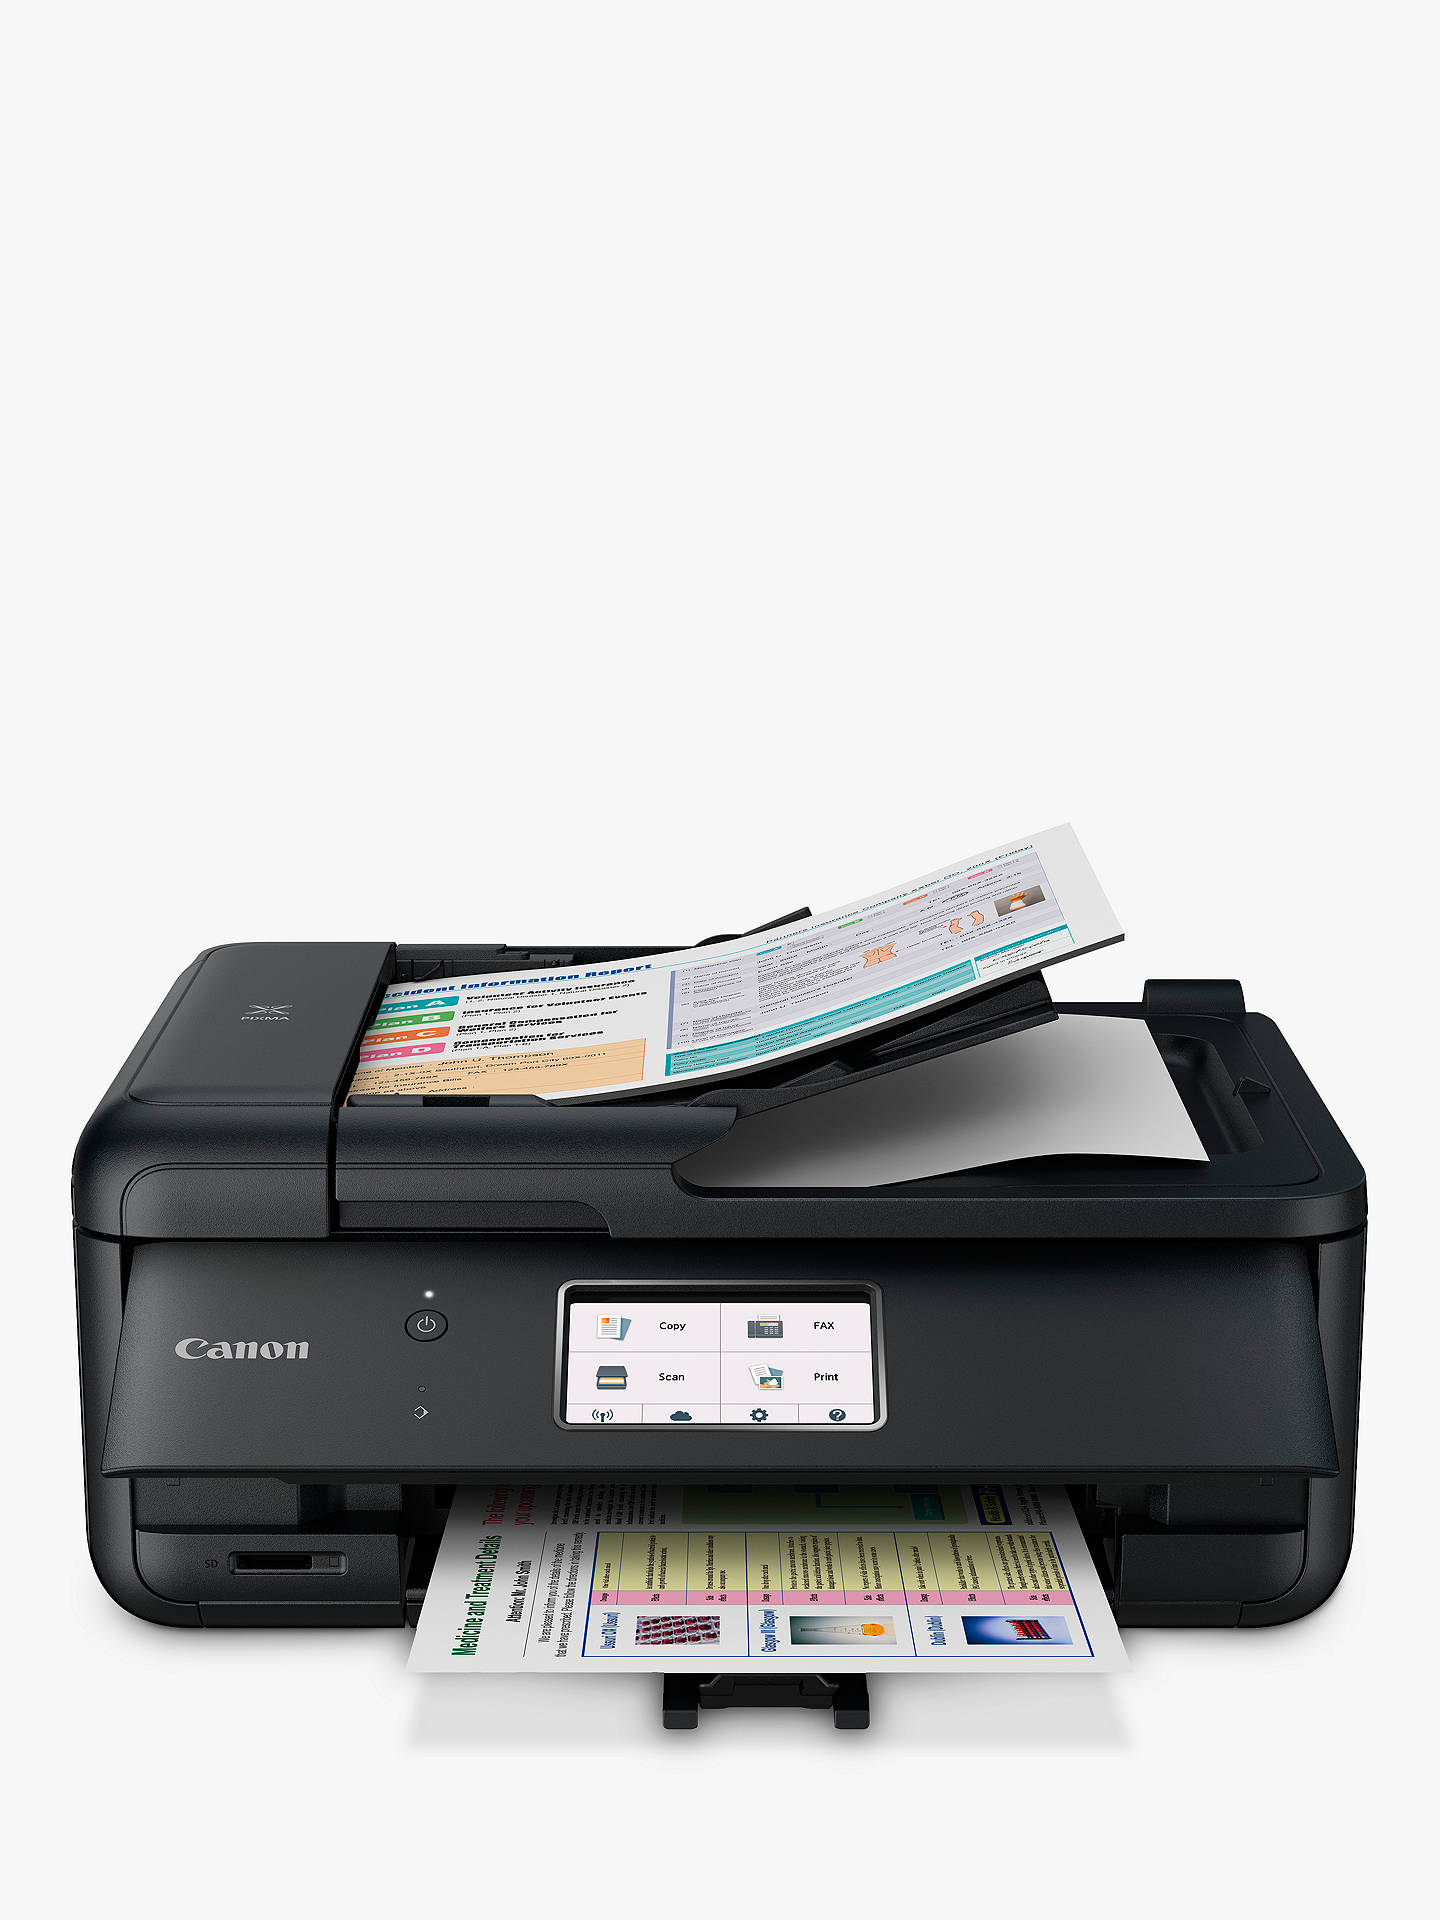 Buy Canon PIXMA TR8550 All-in-One Wireless Wi-Fi Printer with Touch Screen, Black Online at johnlewis.com